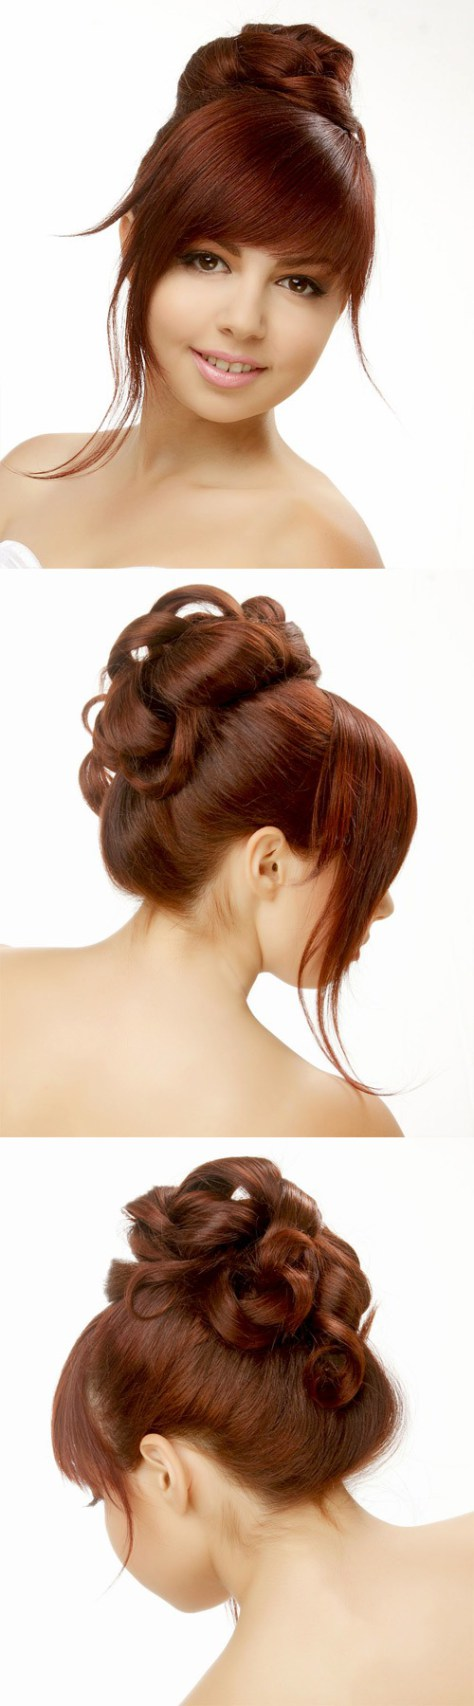 Long updo with blunt cut bangs